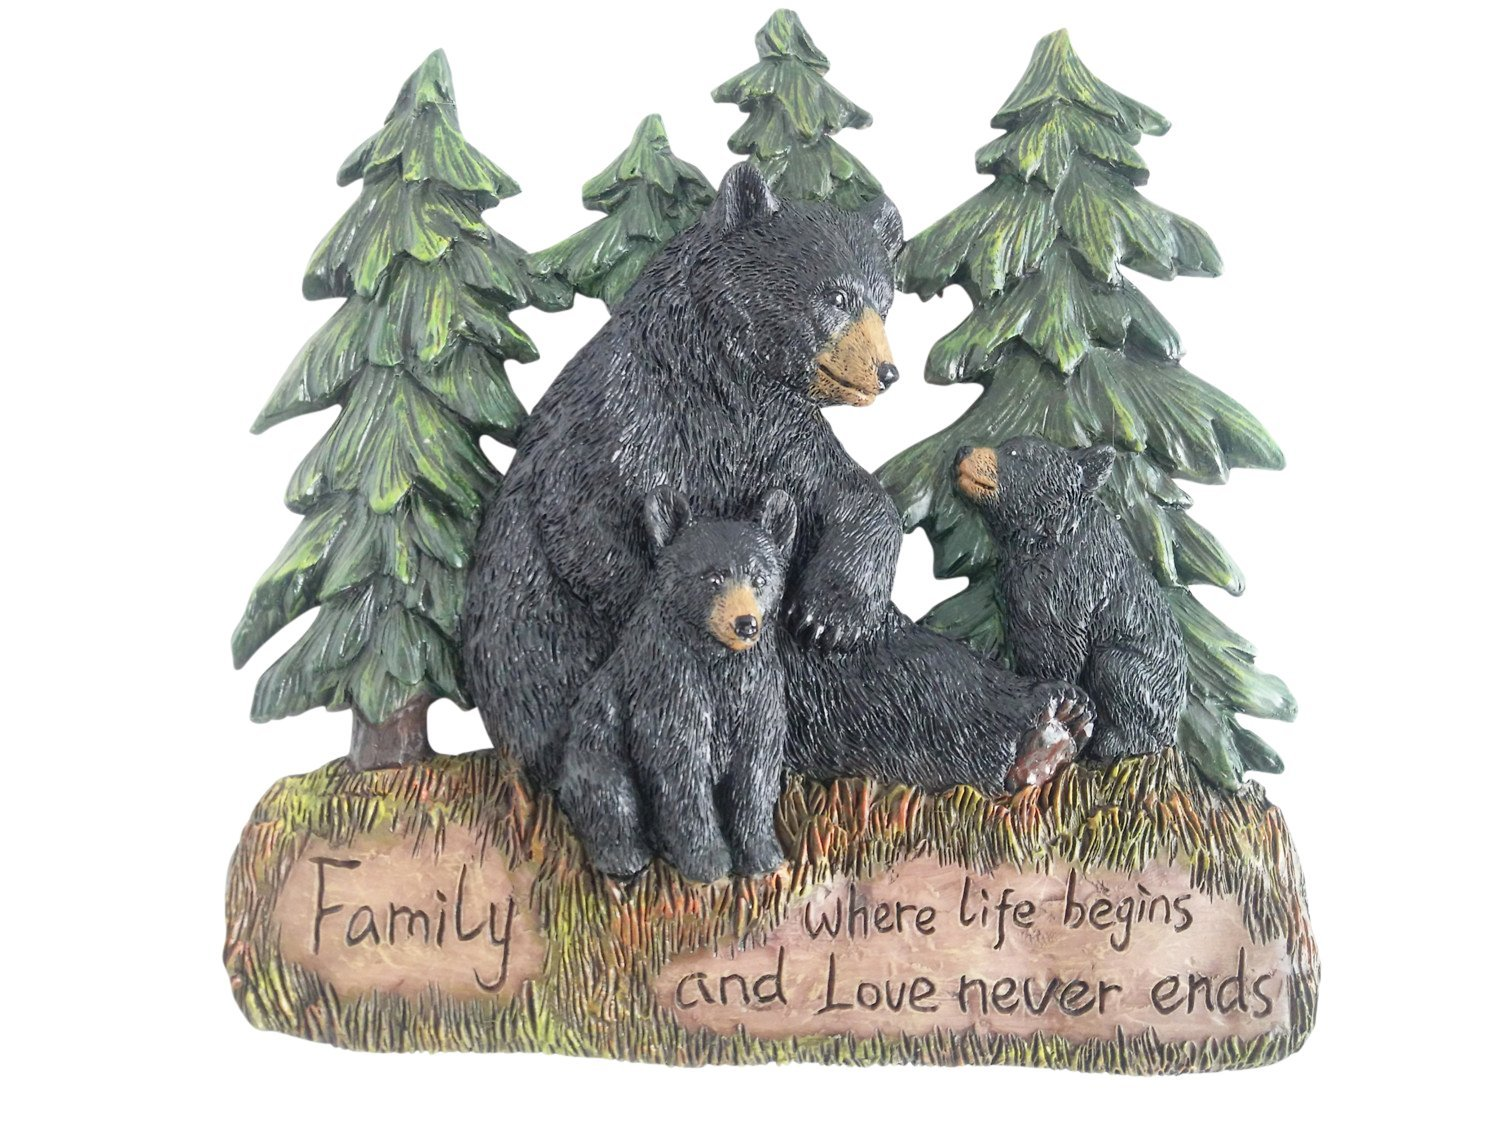 """Rustic Home Decor Kitchen Signs - Black Bear Decor Family Wall Plaque Made From Polyresin - Black Bear Wall Decorations Family Signs for Home Decor (Family Where Life Begins and Love Never Ends 9.5"""")"""